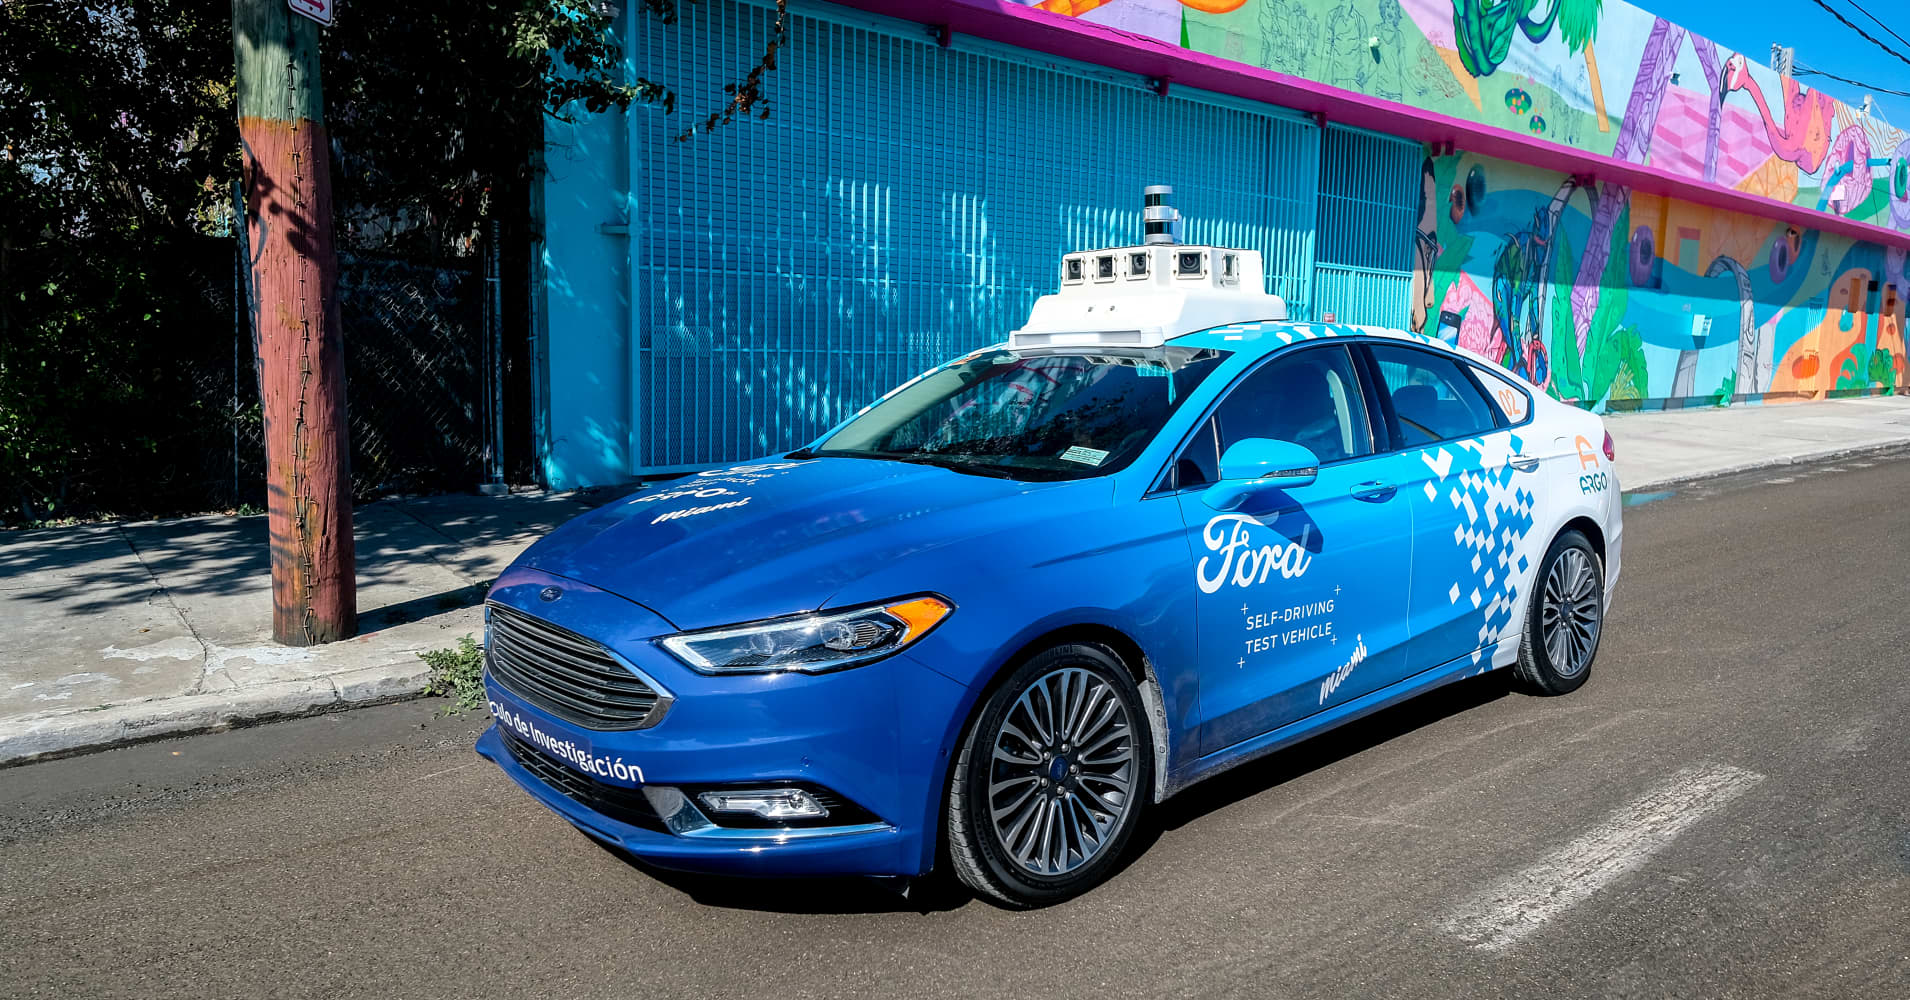 Here's how Ford's autonomous vehicles will shake up ride hailing and delivery services